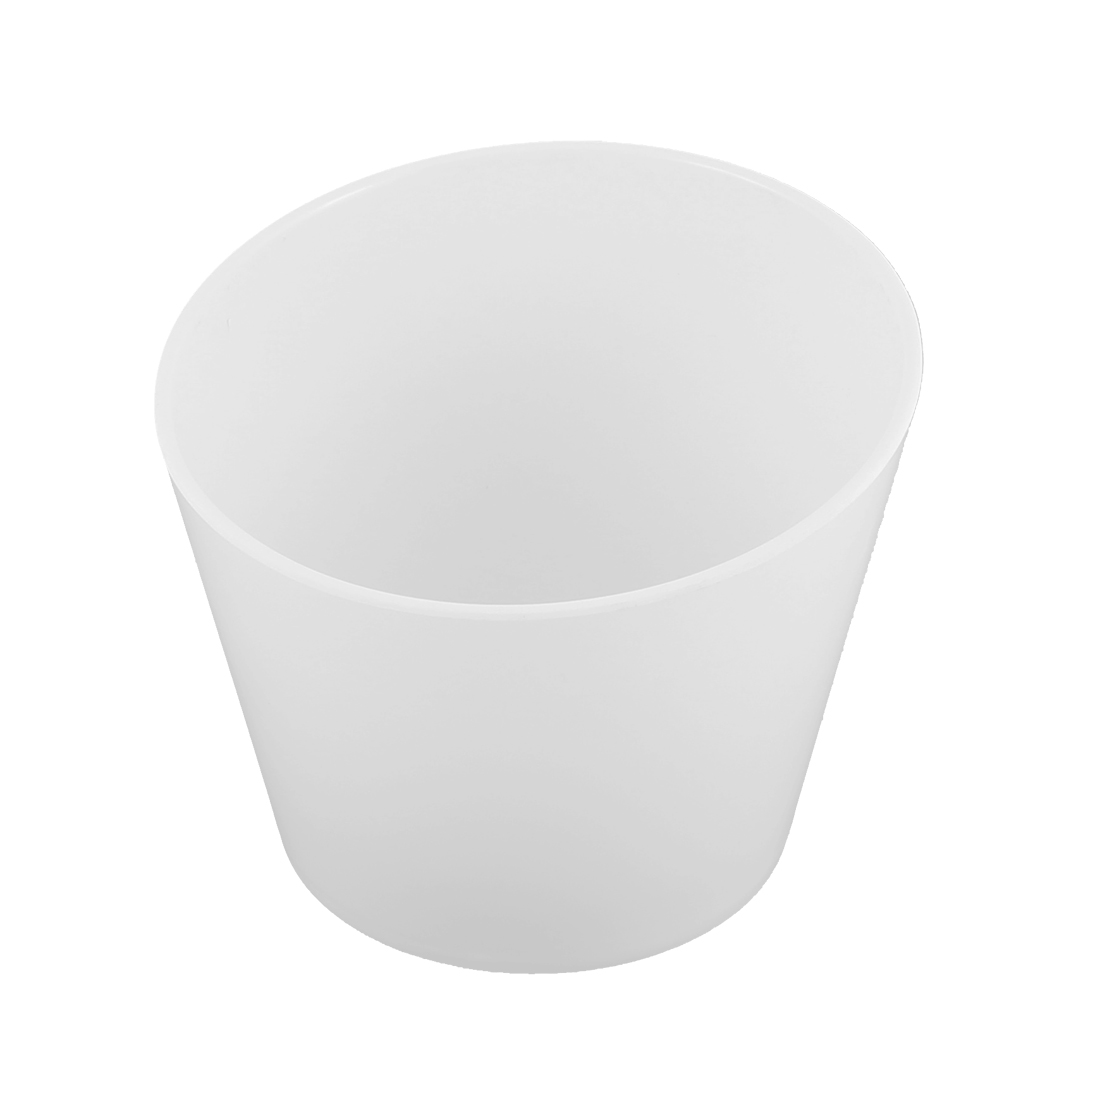 "Restaurant Water Bowl Slant Cup White 5.5"" Dia"